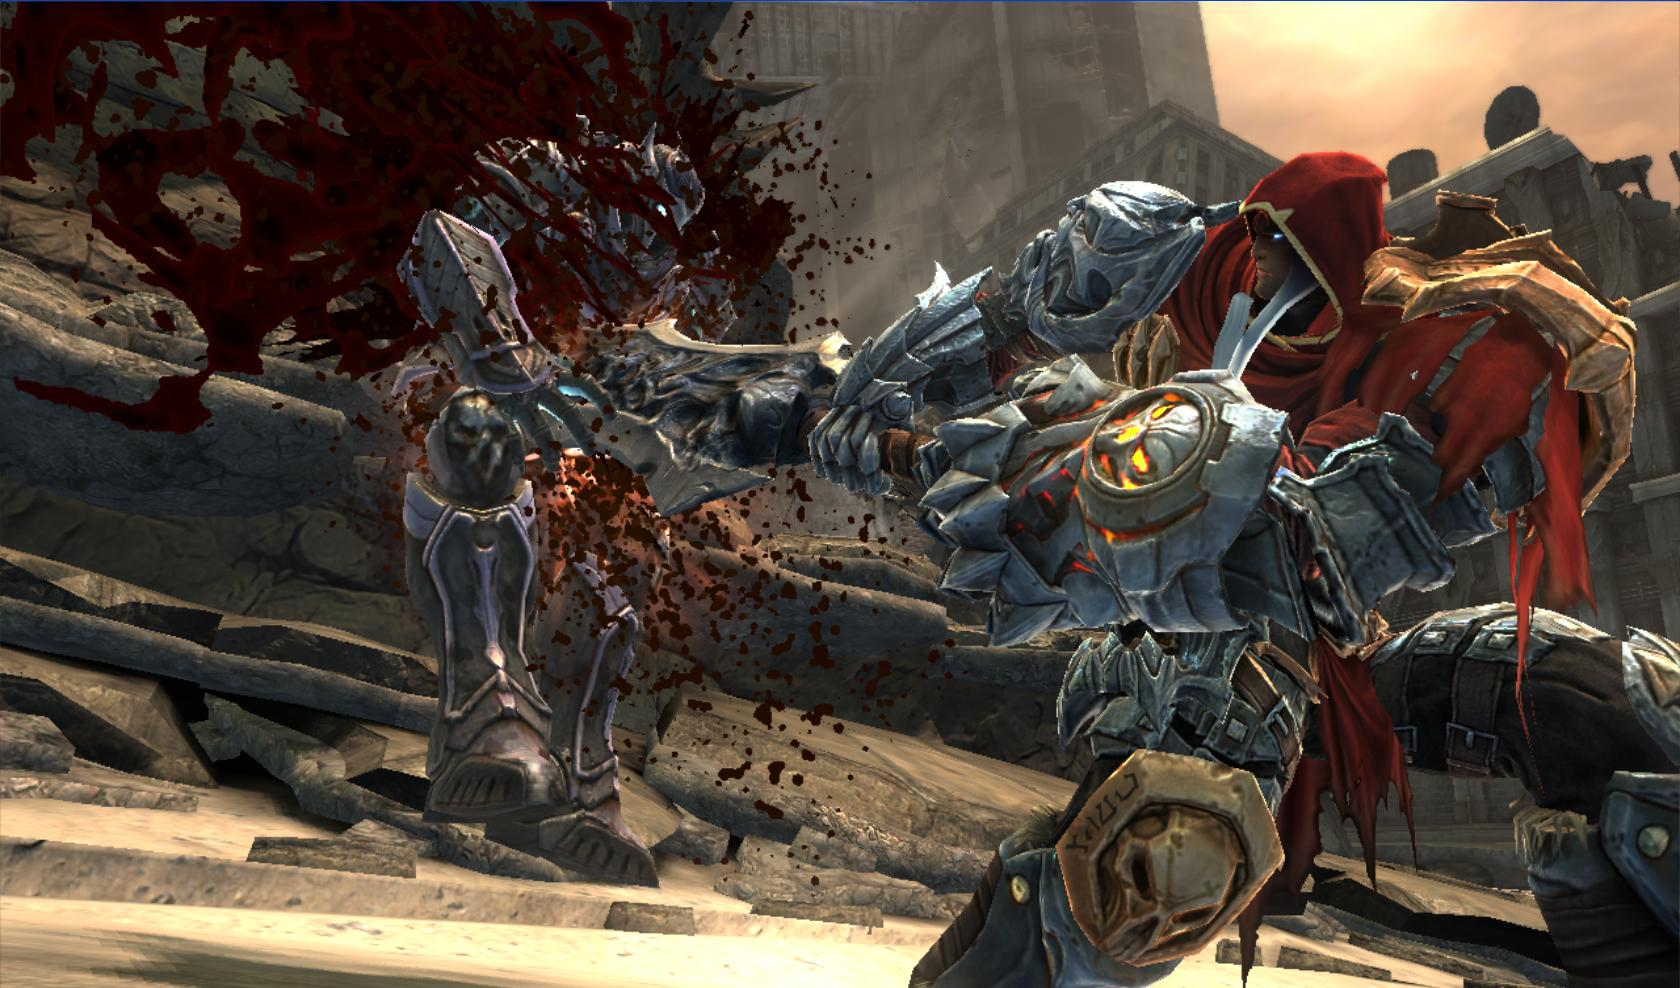 Find the best laptop for Darksiders